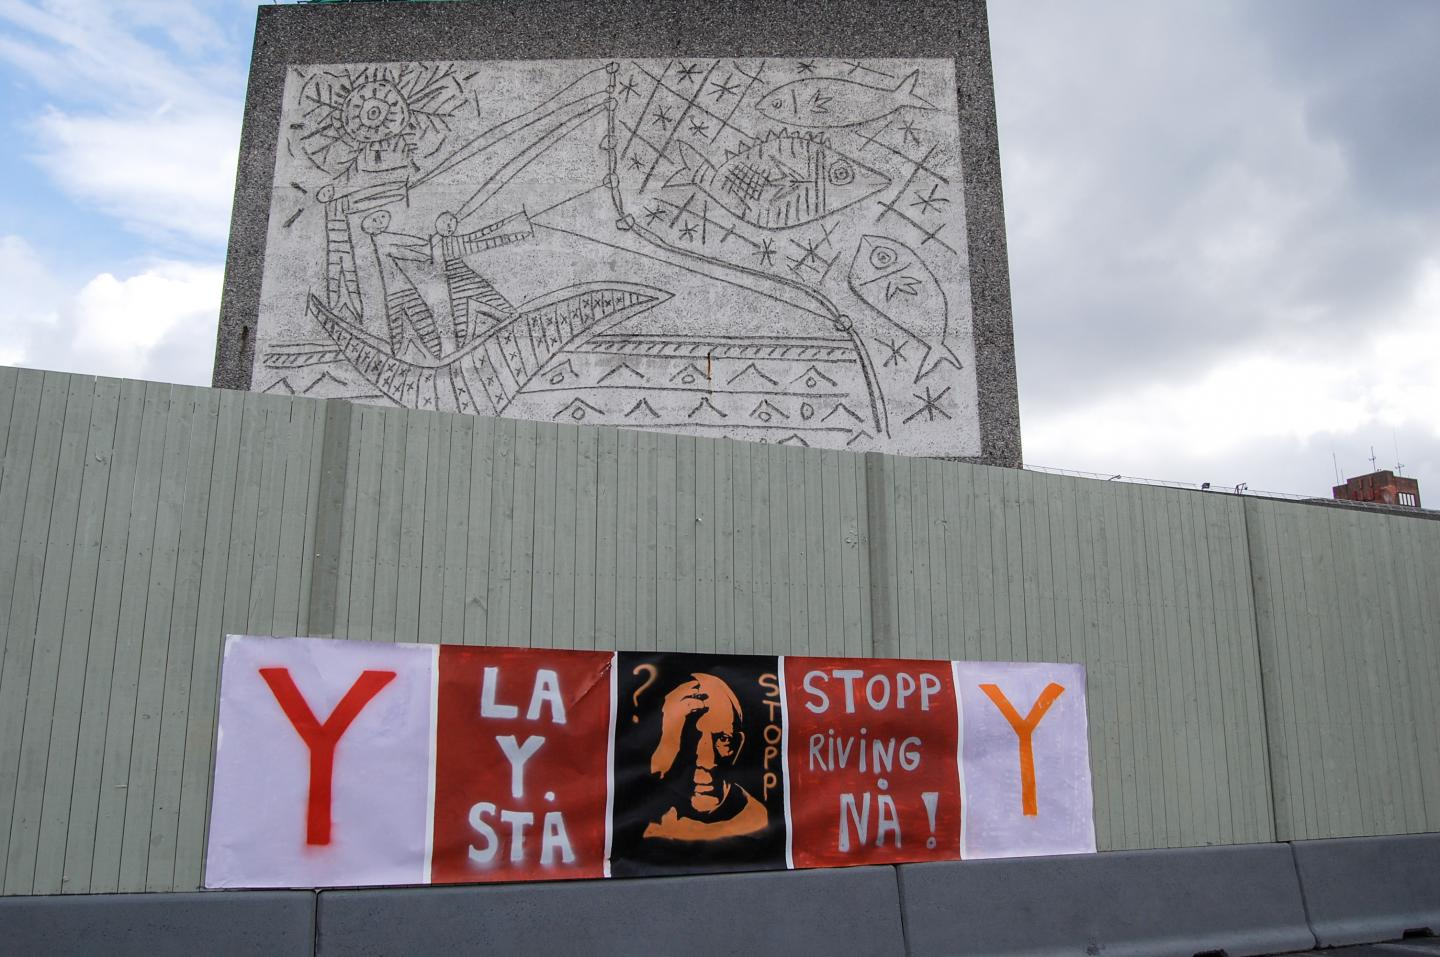 Protest posters in front of Y Building, Oslo, 2020. Courtesy: Getty Images; photograph: Pierre-Henry Deshayes